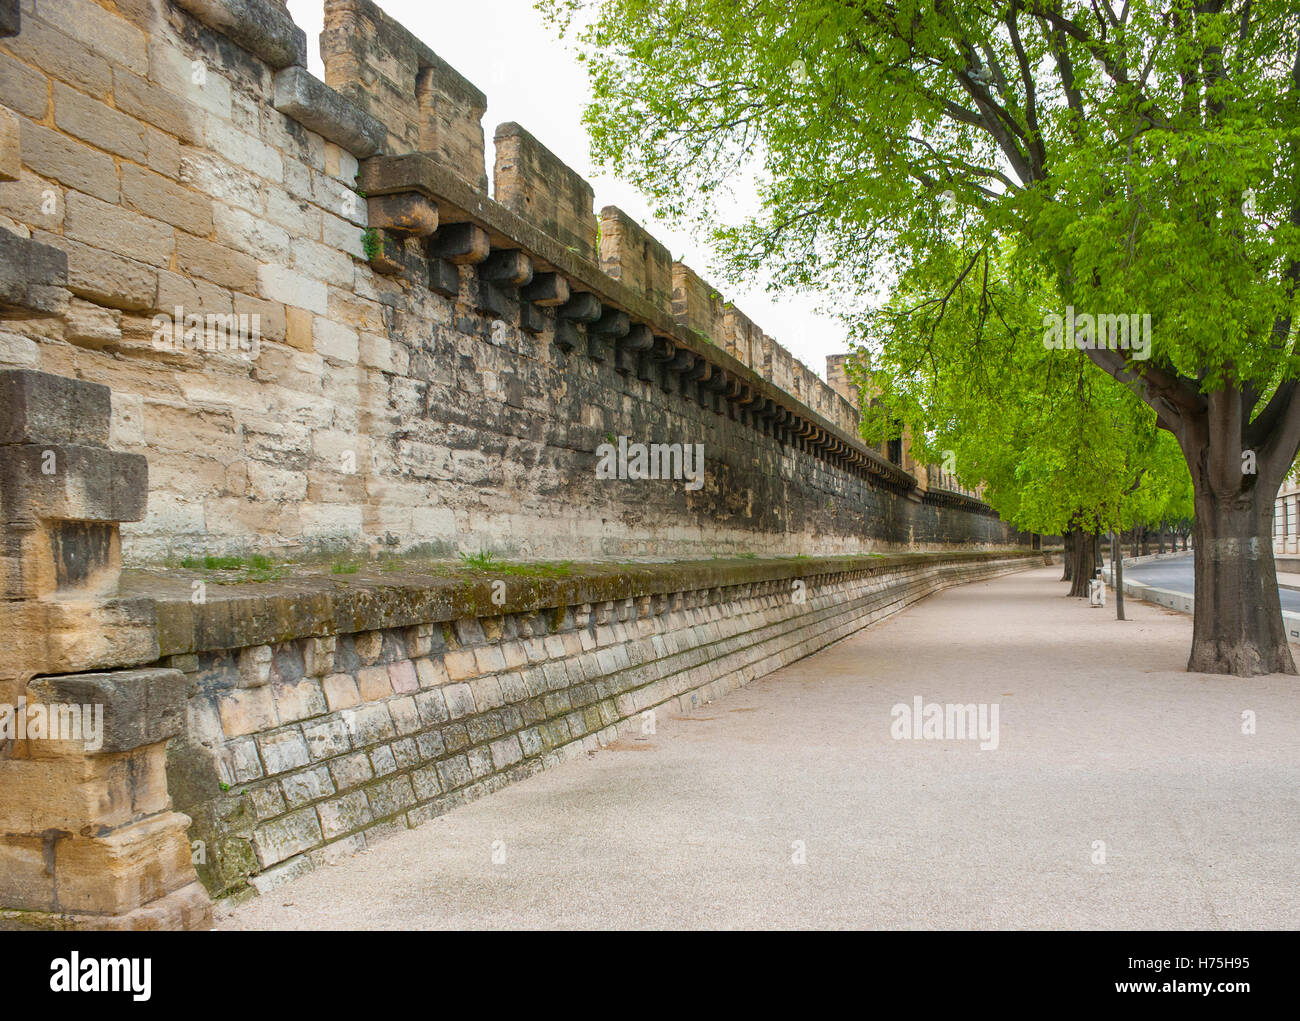 Ramparts still encircle Avignon and they are one of the finest examples of medieval fortification in existence. - Stock Image